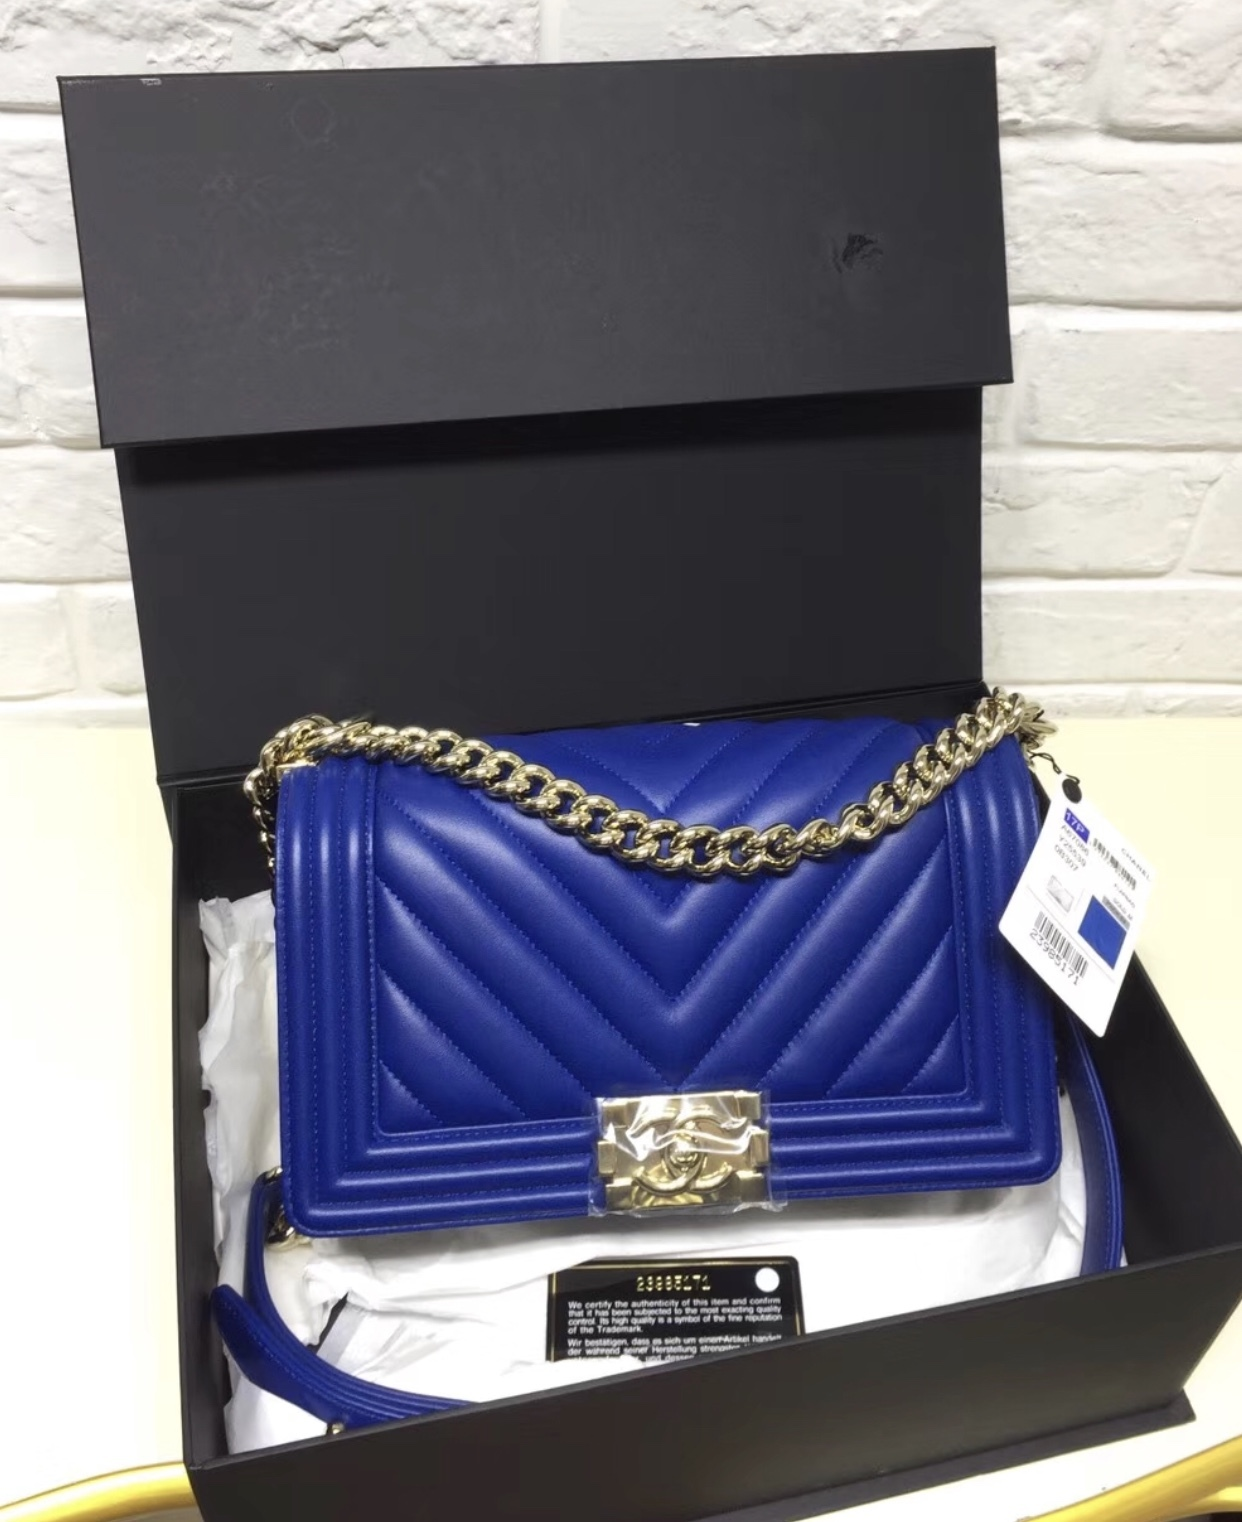 AUTH NEW CHANEL ELECTRIC BLUE CHEVRON QUIILTED MEDIUM BOY FLAP BAG SHW